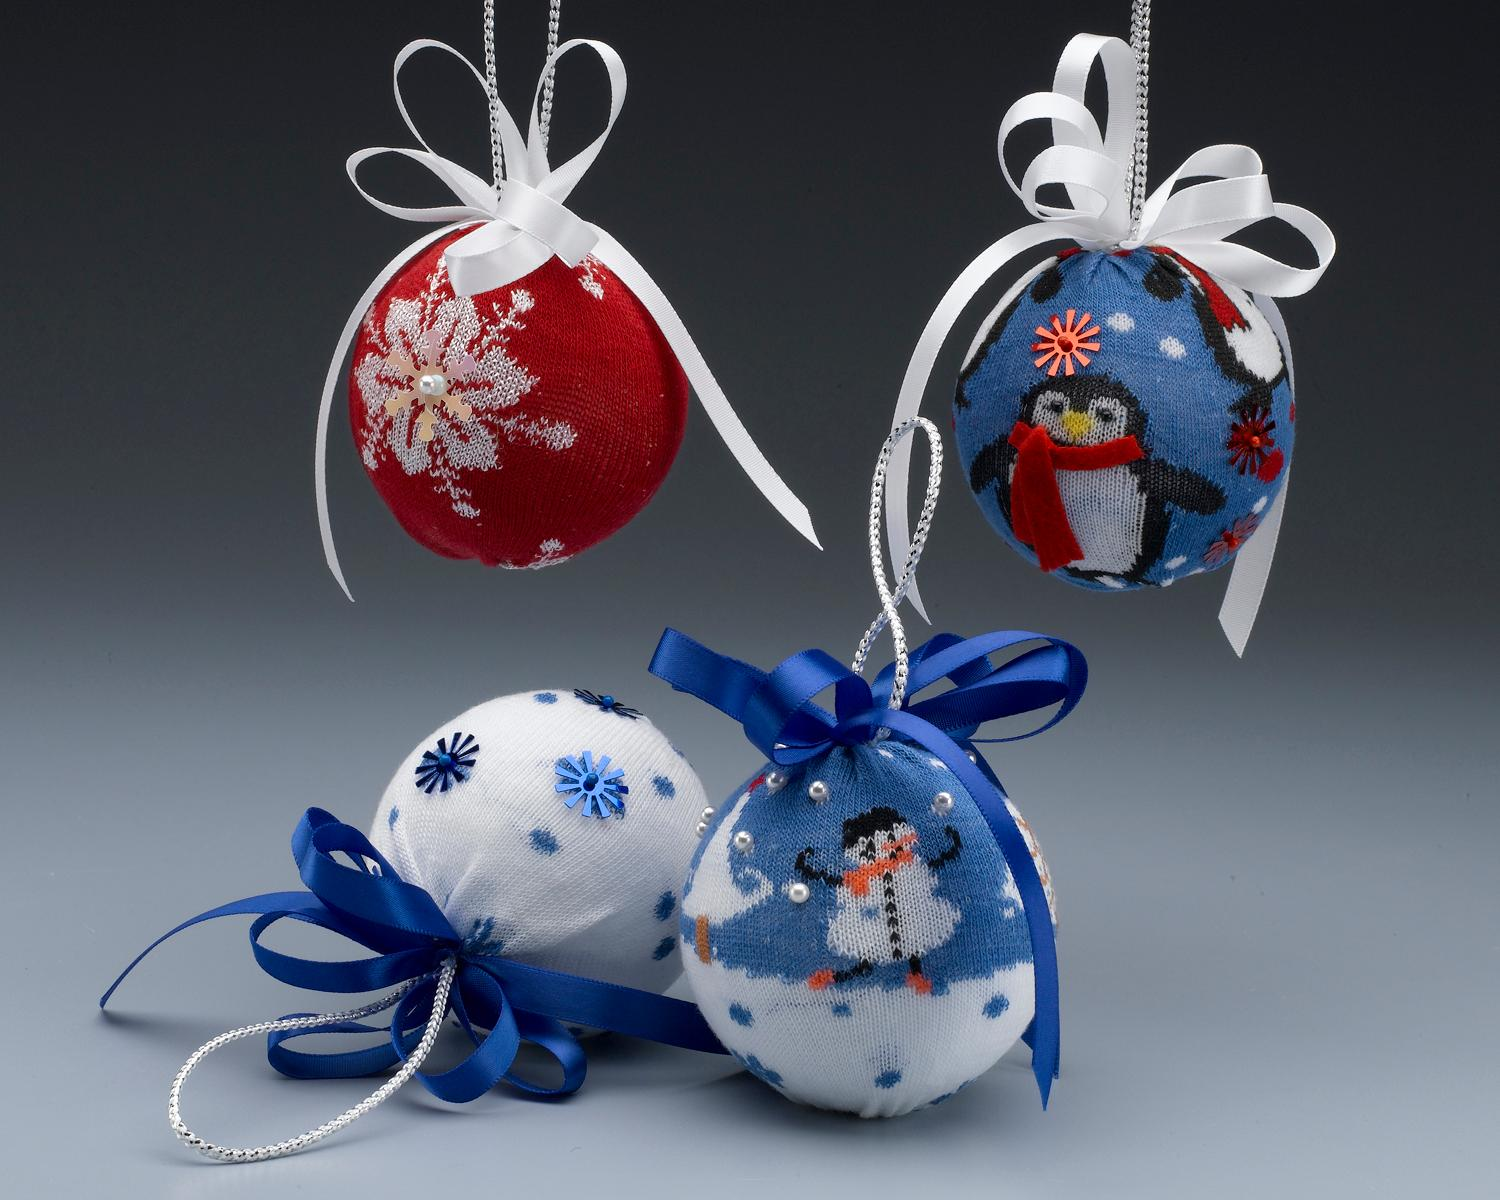 Sock it to 'em (in a good way) with these cute Sock Ornaments.(Image: Kathleen George/Crafts 'n Coffee) Link: http://craftsncoffee.com/2012/12/18/heres-how-to-make-dollar-store-christmas-sock-ornaments/